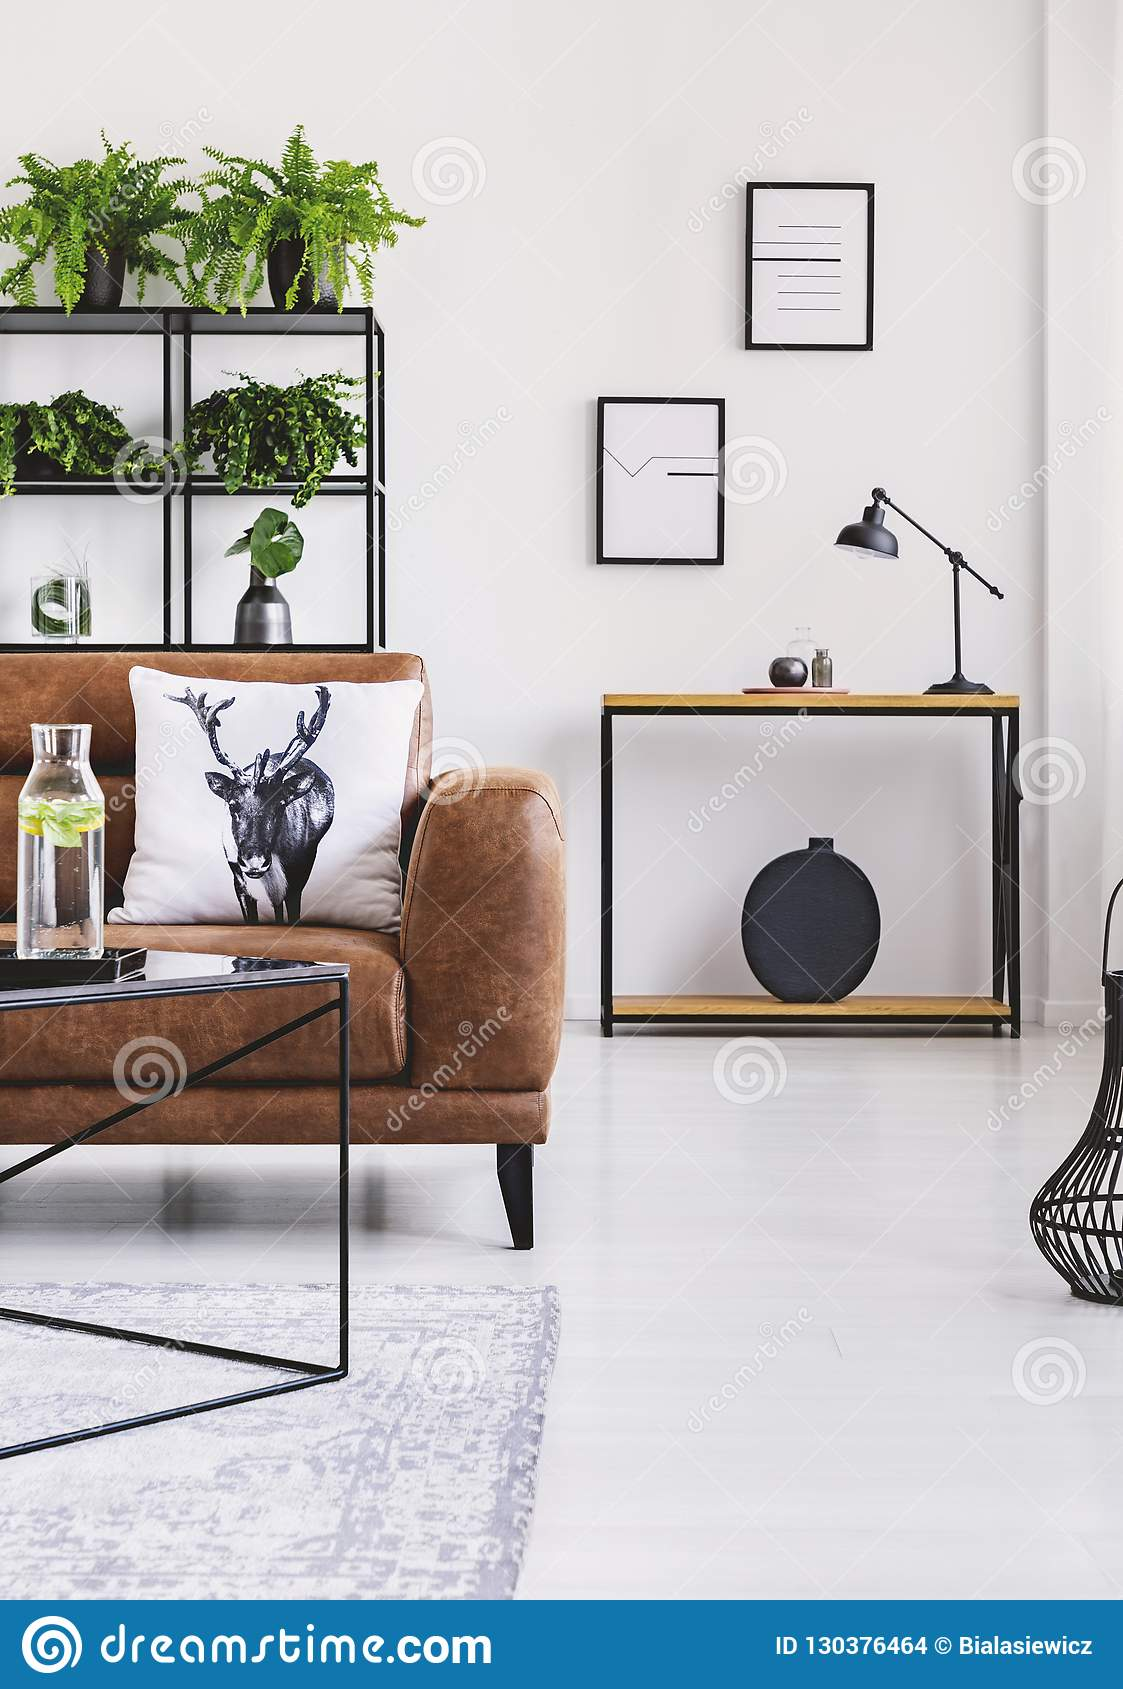 Urban jungle in modern home interior. Pots with plant on a shelf behind leather sofa.